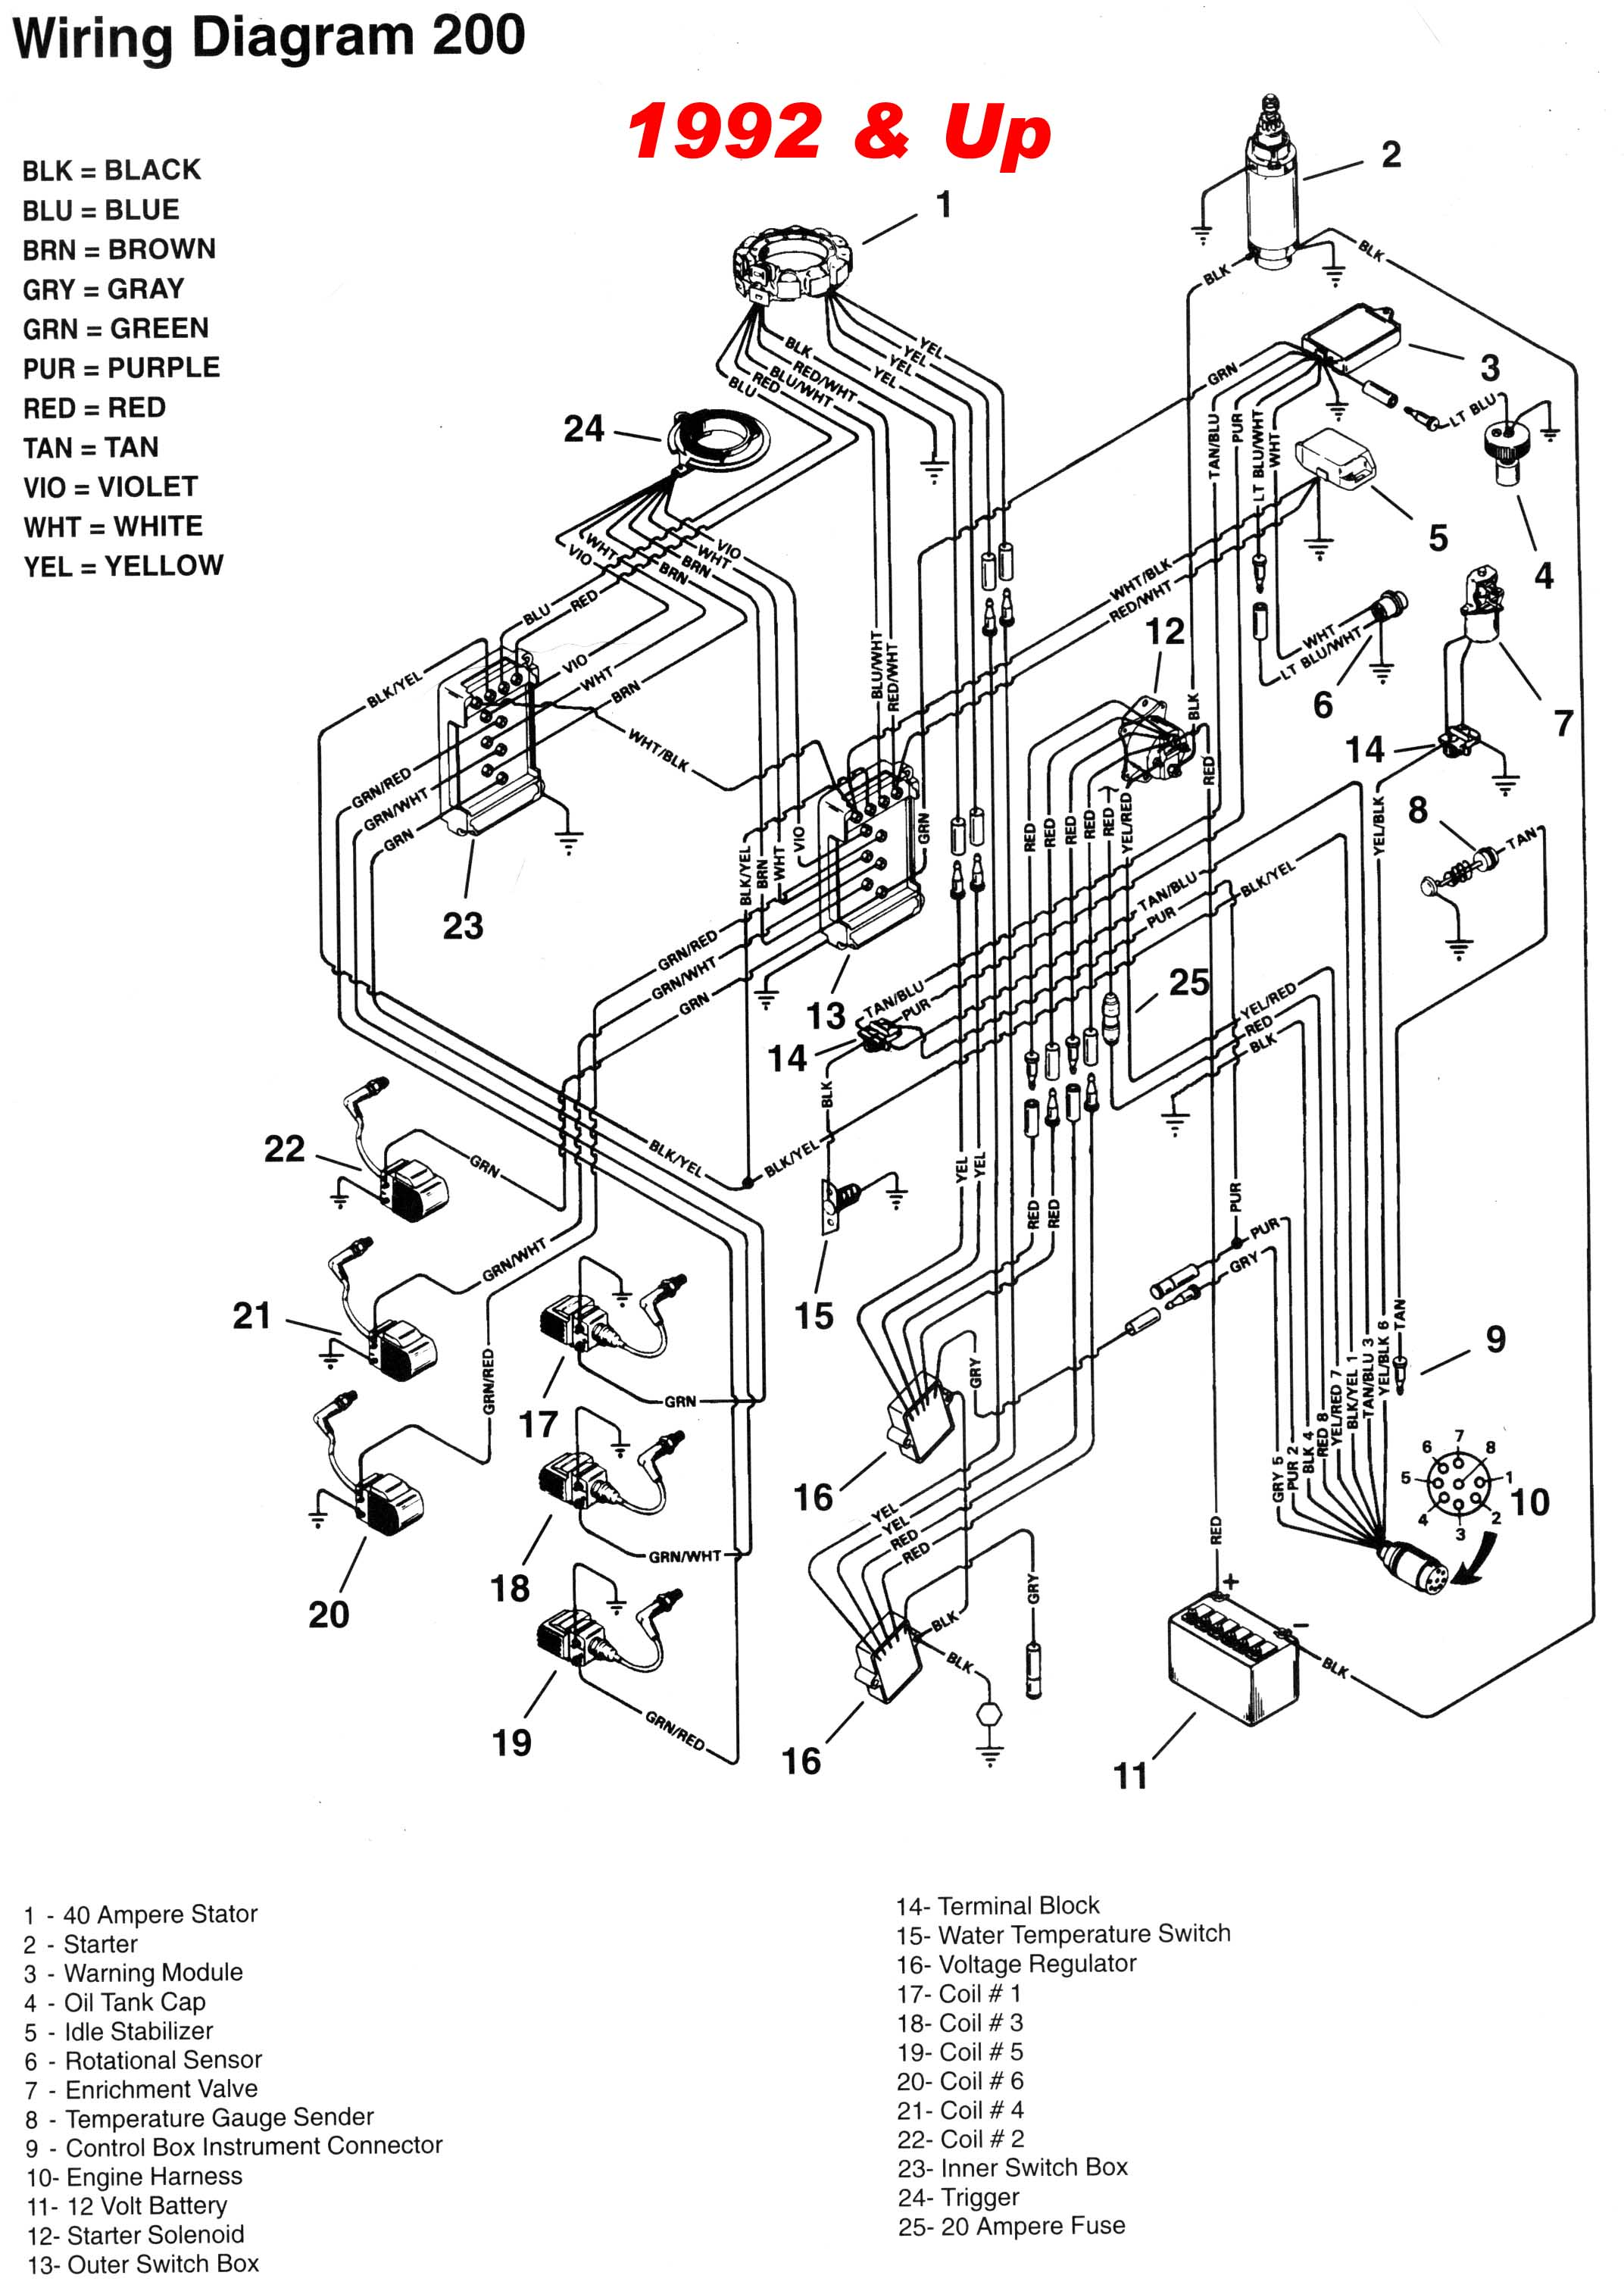 Mercury Switch Box Wiring Diagram